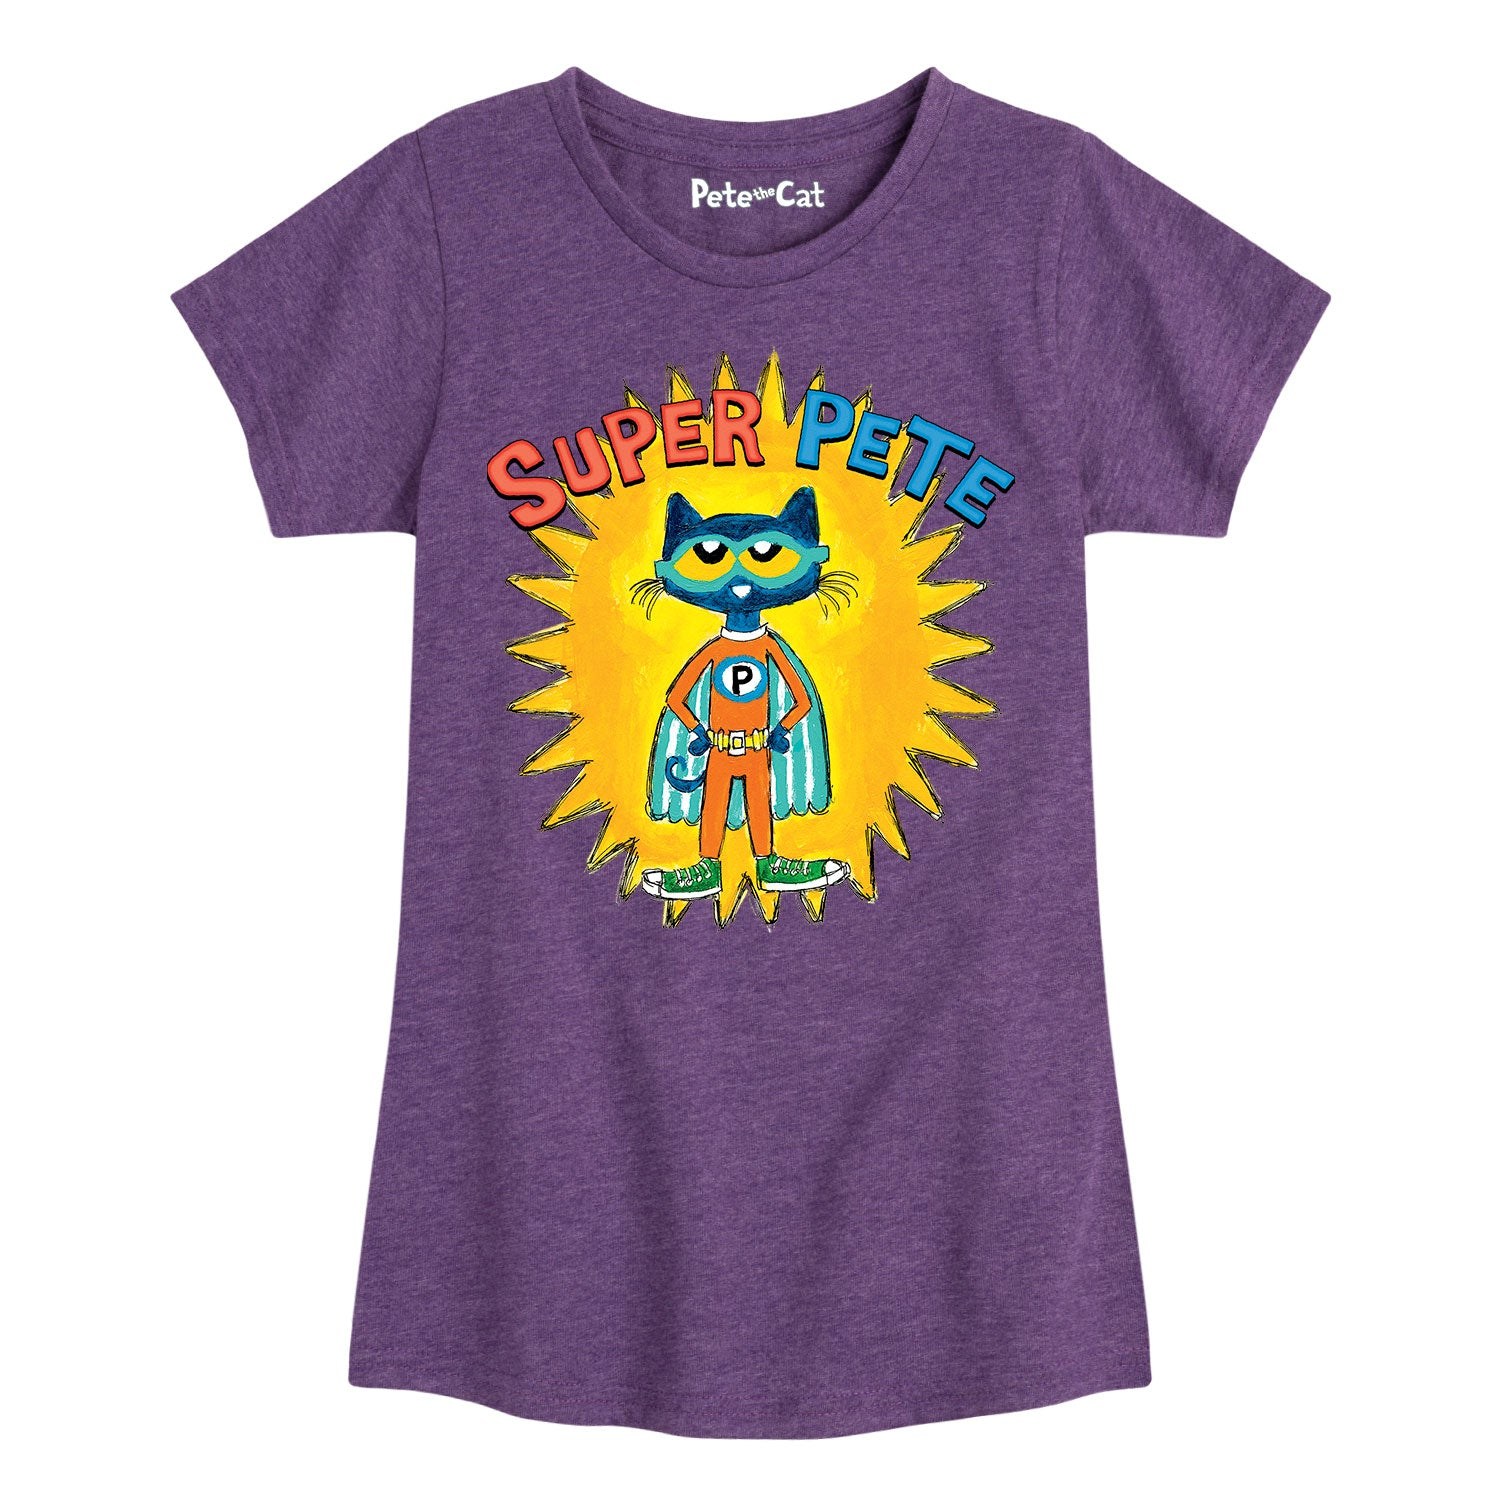 Super Pete With Yellow Burst - Youth & Toddler Girls Short Sleeve T-Shirt